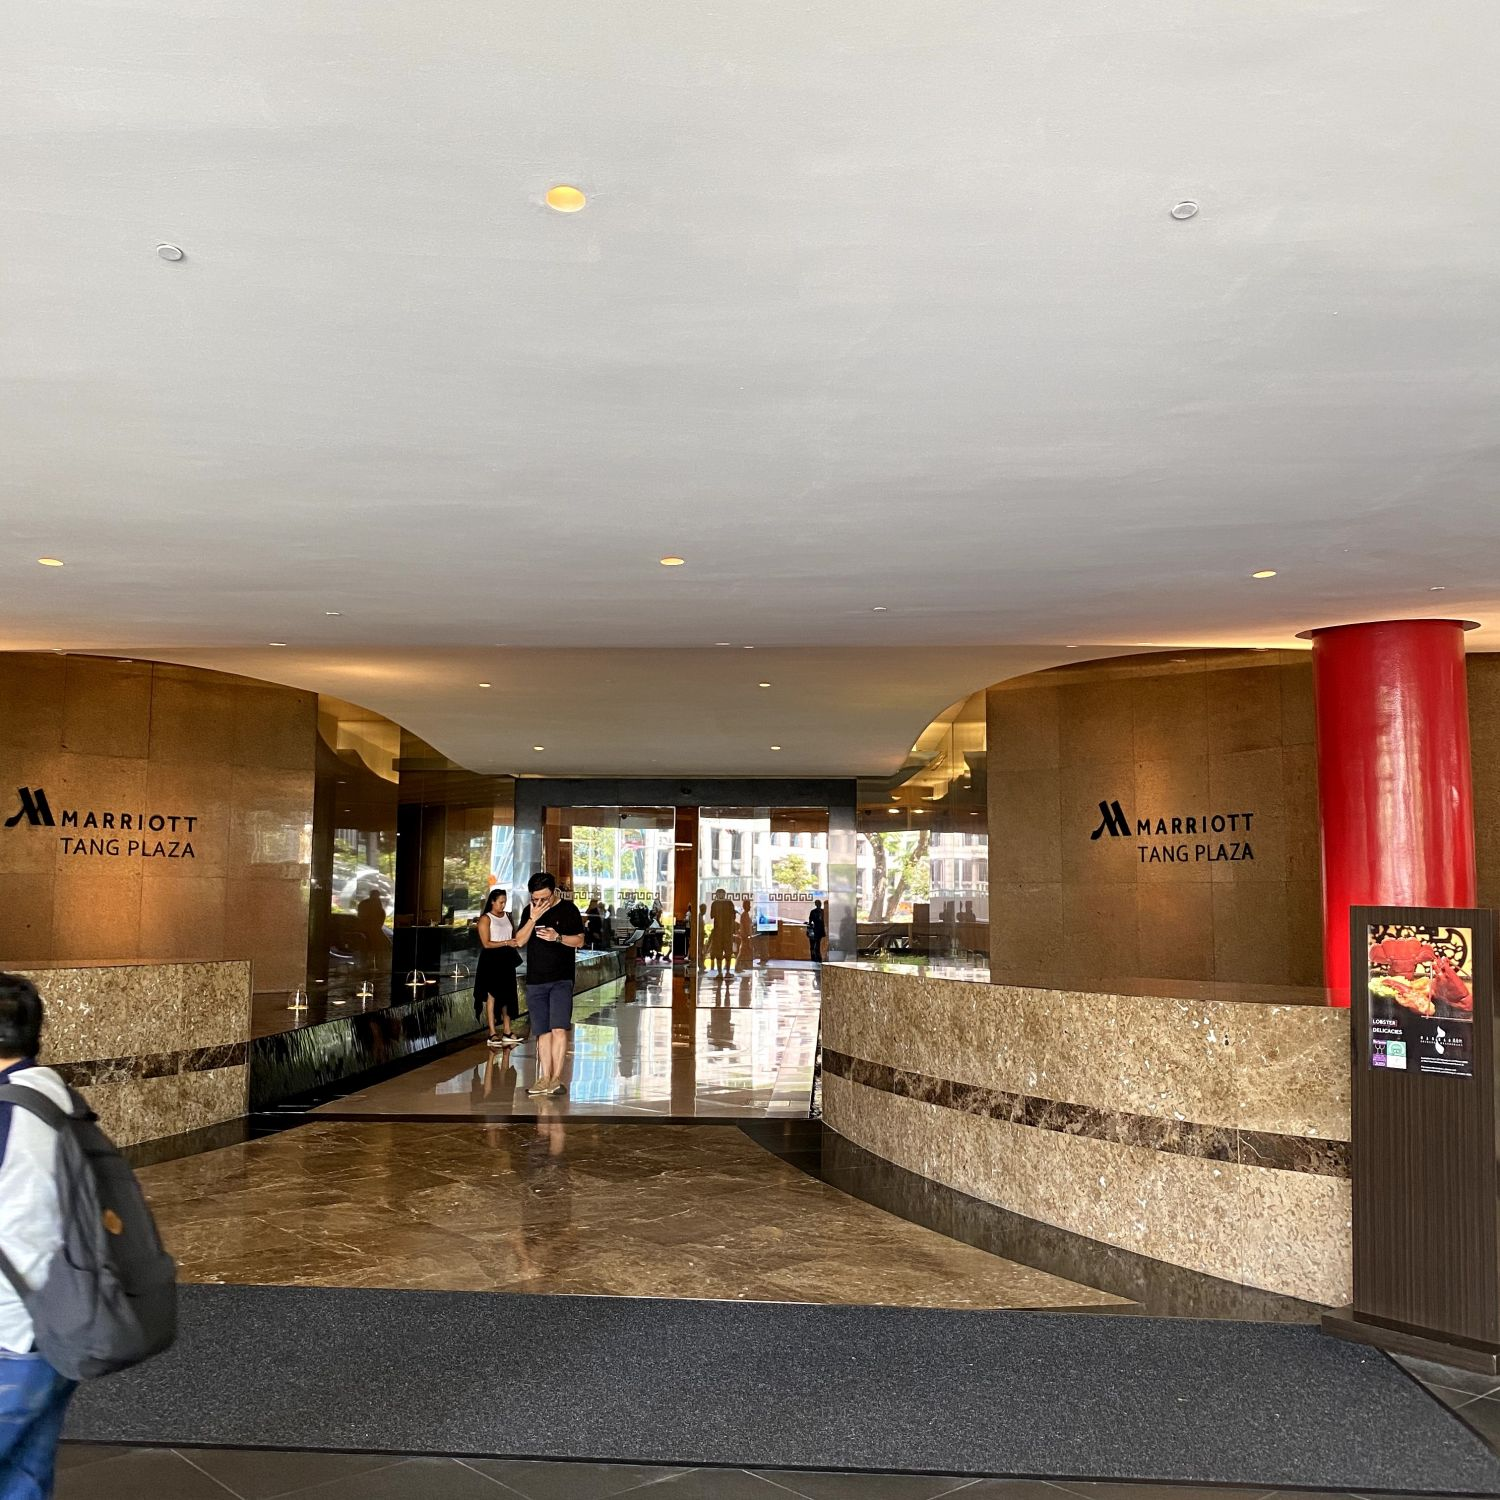 singapore marriott tang plaza hotel entrance